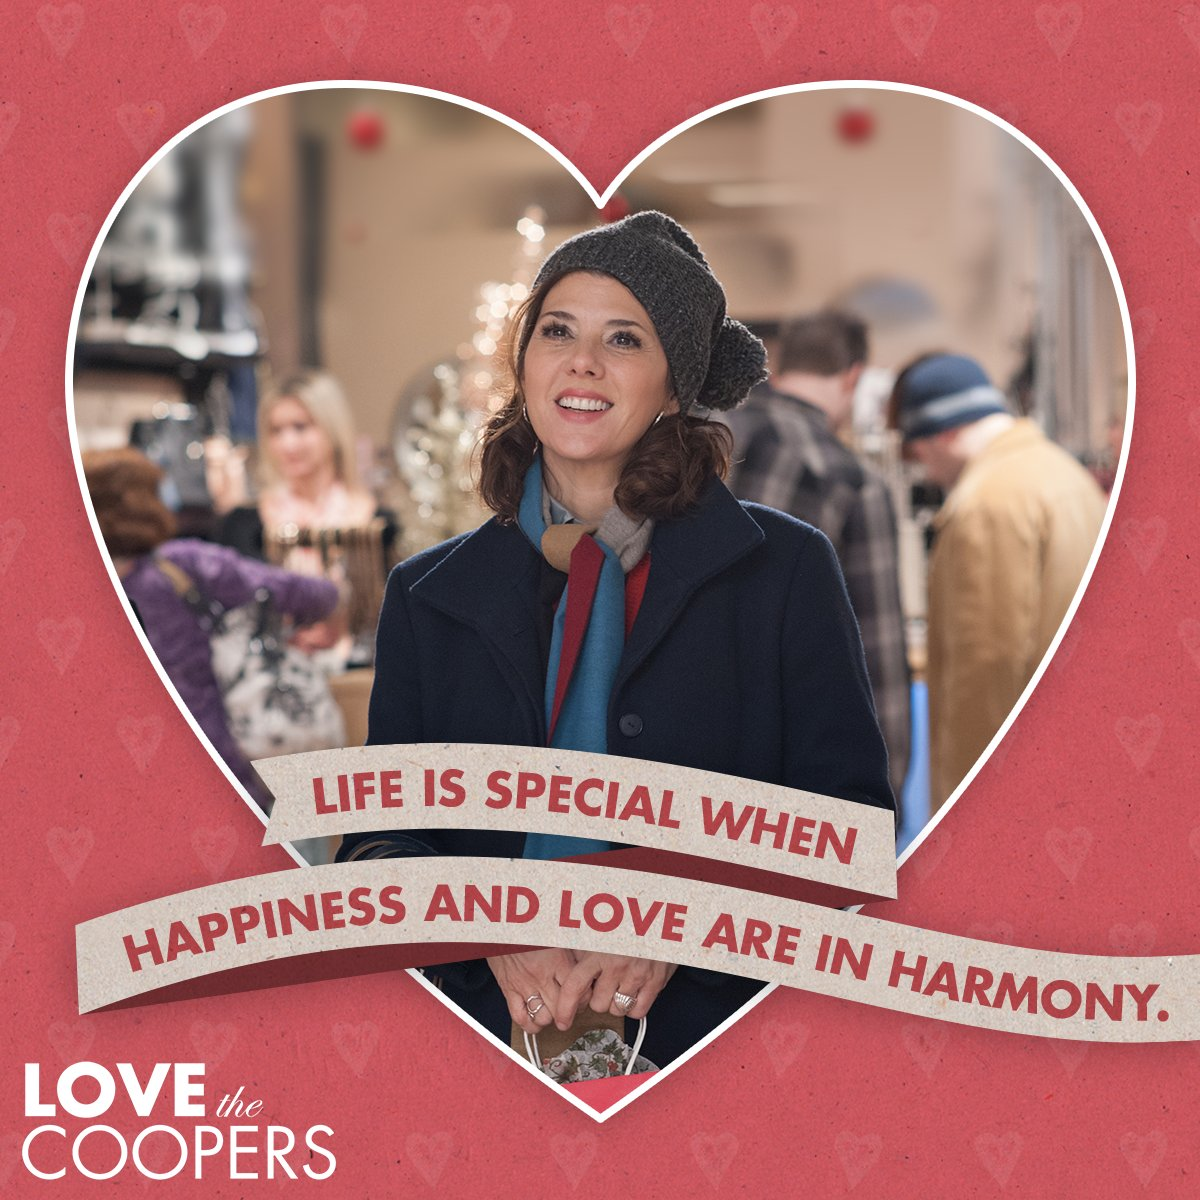 Get ready for a  sweet Valentine's Day. Share your love with this Love the Coopers V-Day card! #LoveTheCoopers https://t.co/ccAqVCTmmg